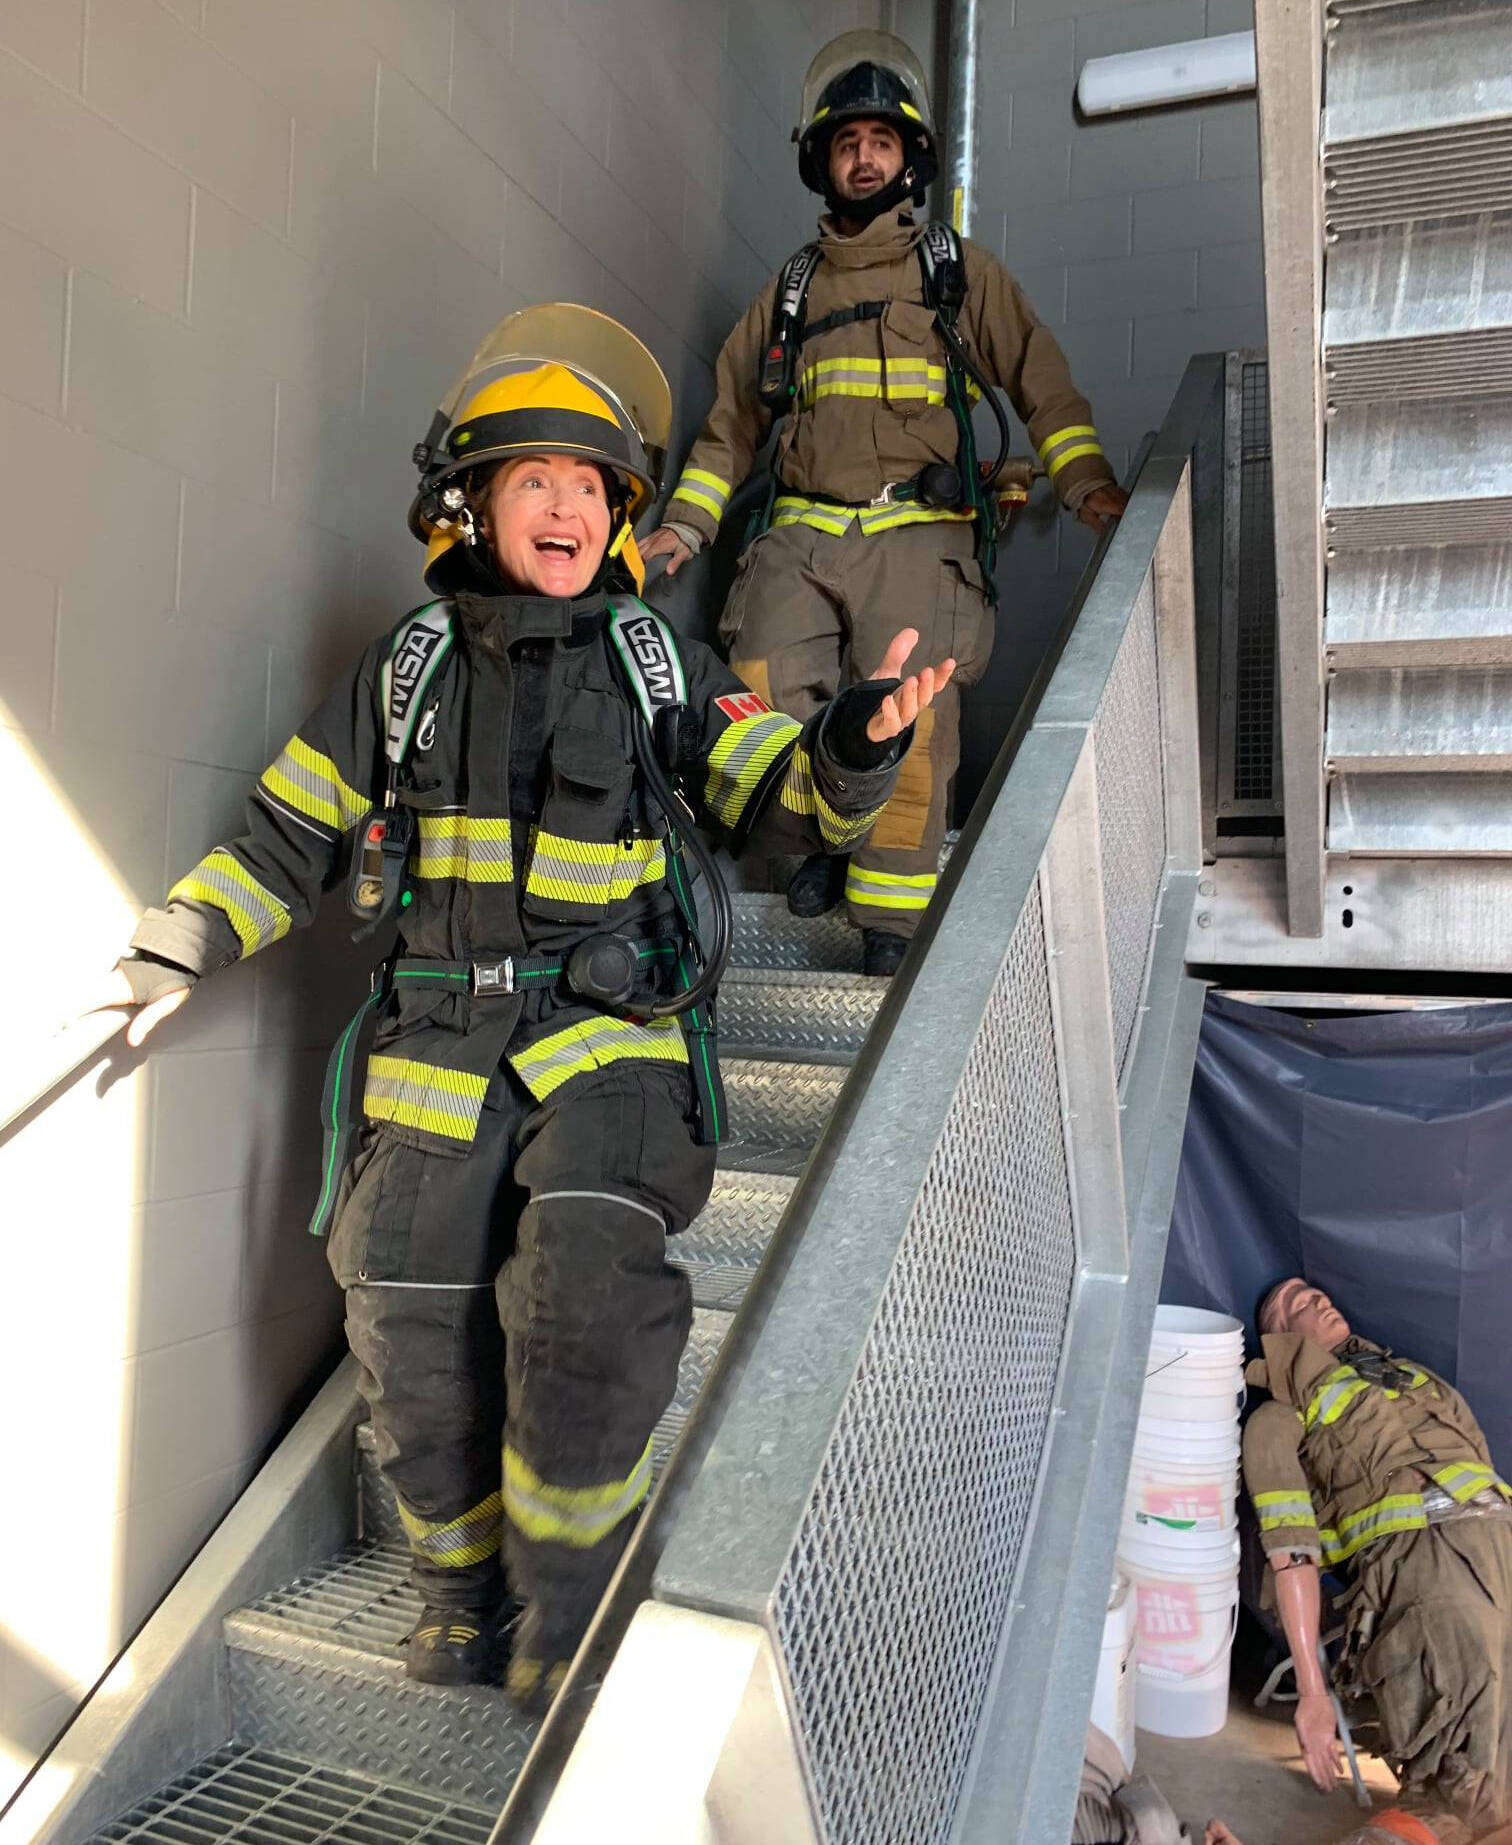 Osoyoos firefighters Barb and Gurvir Gill participated in the 9/11 stair climb today to honour the victims of 9/11 20 years ago. (Osoyoos Fire Rescue)